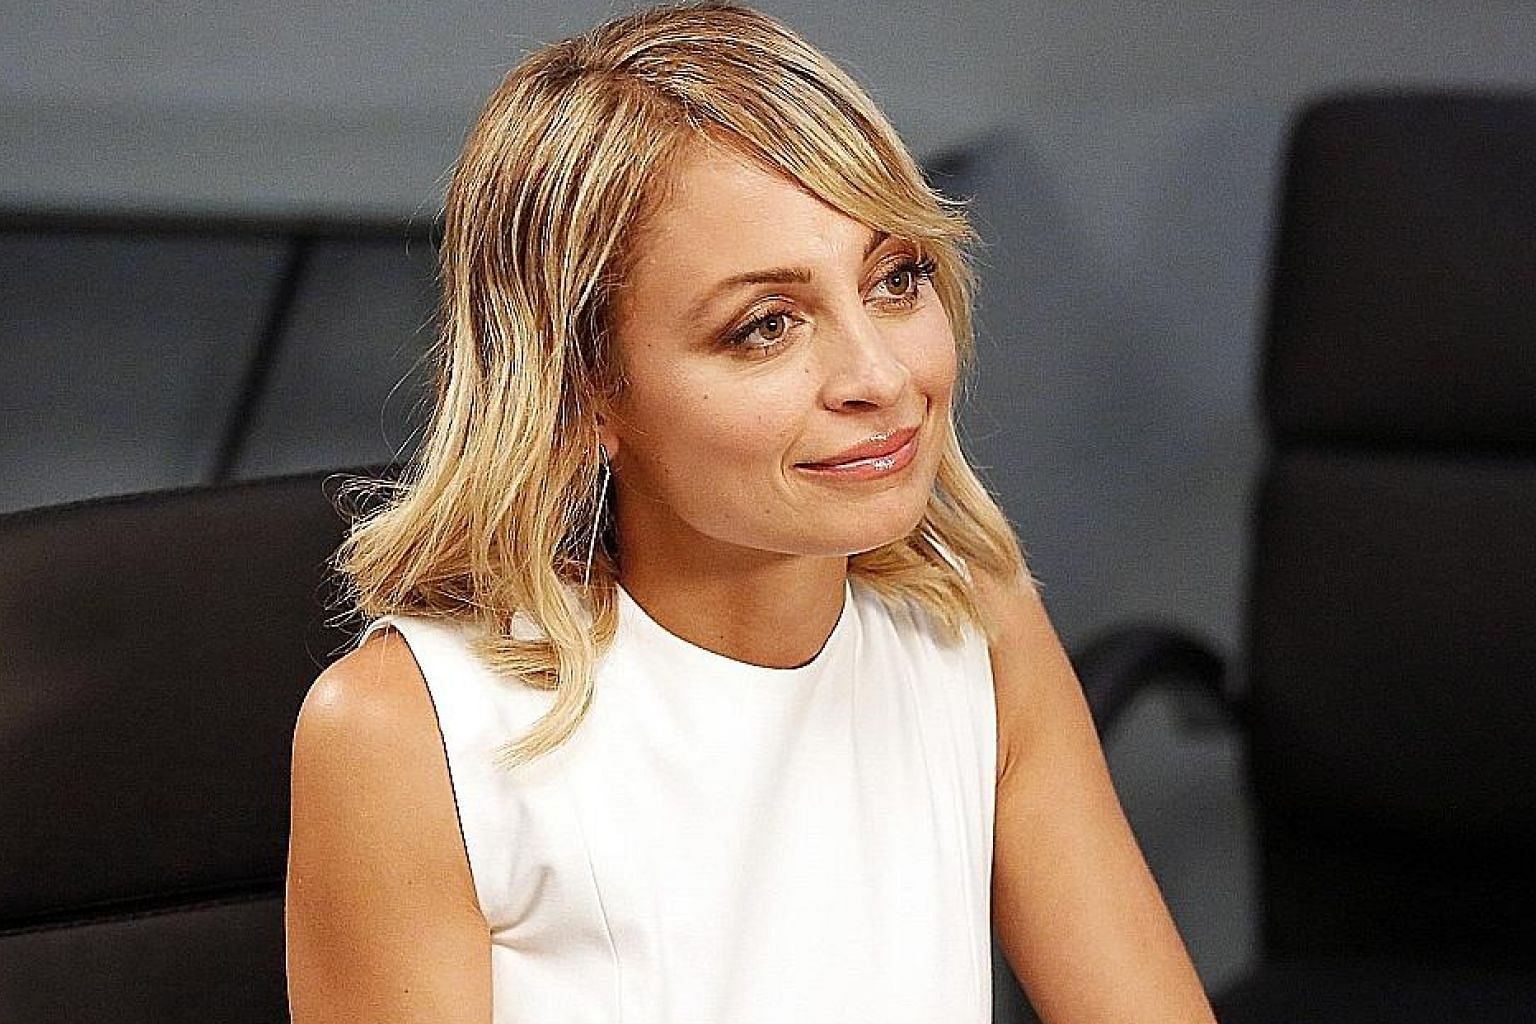 Nicole Richie plays a television anchor in Great News.